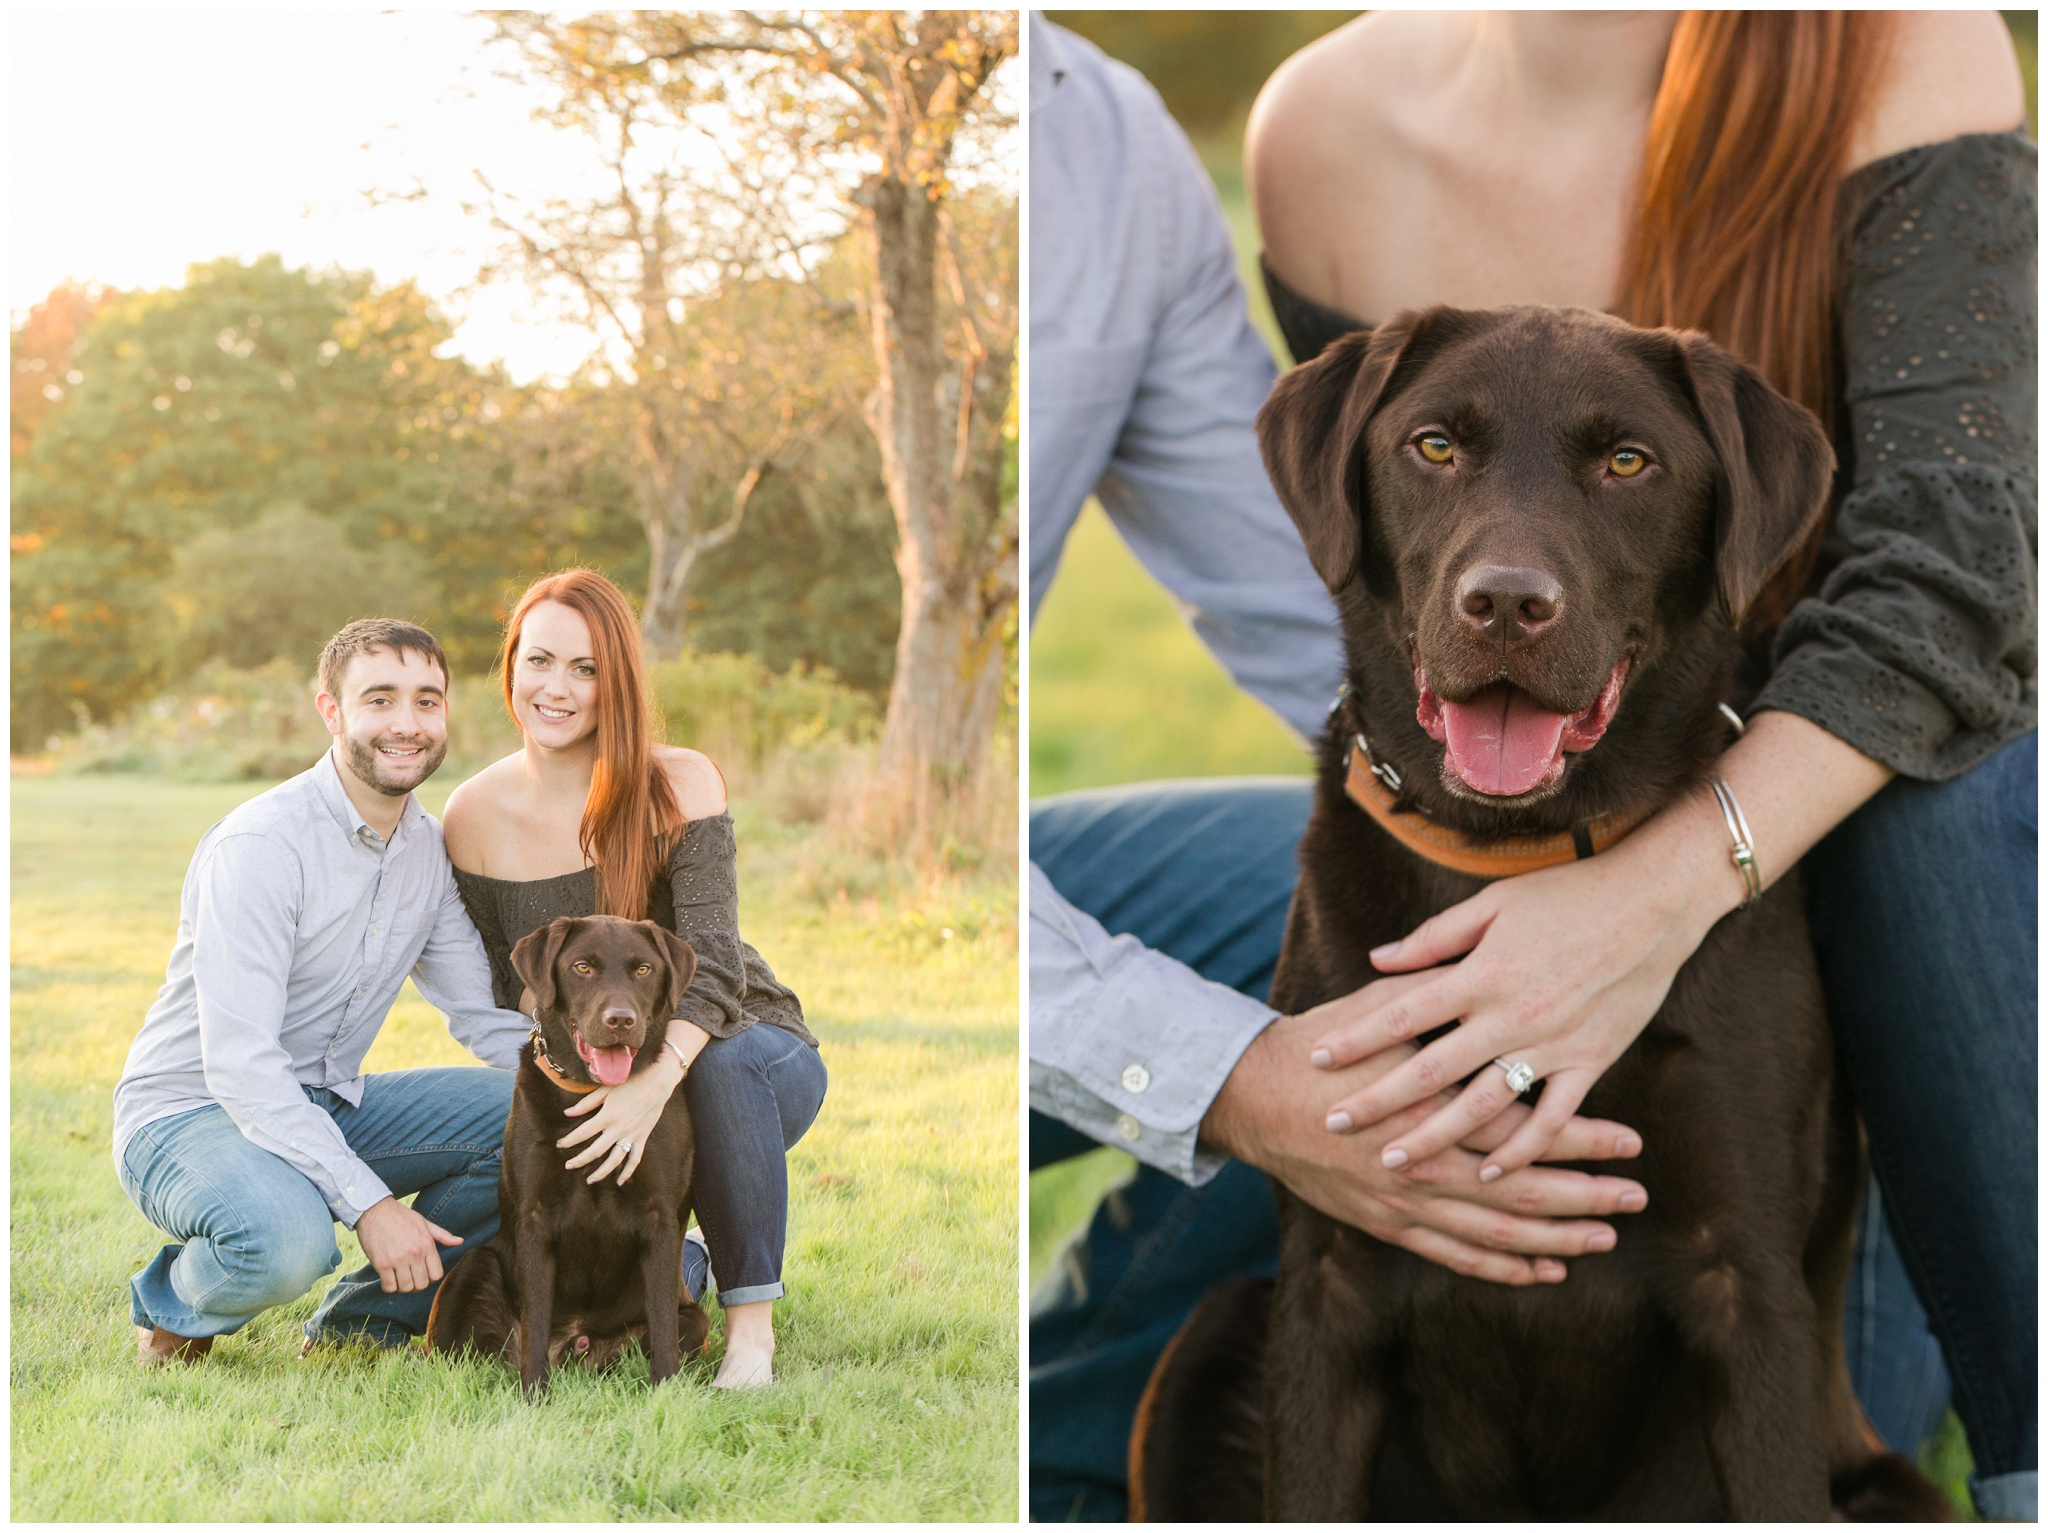 New Hampshire Wedding Photographer | Engagement Session | Wagon Hill Durham, NH